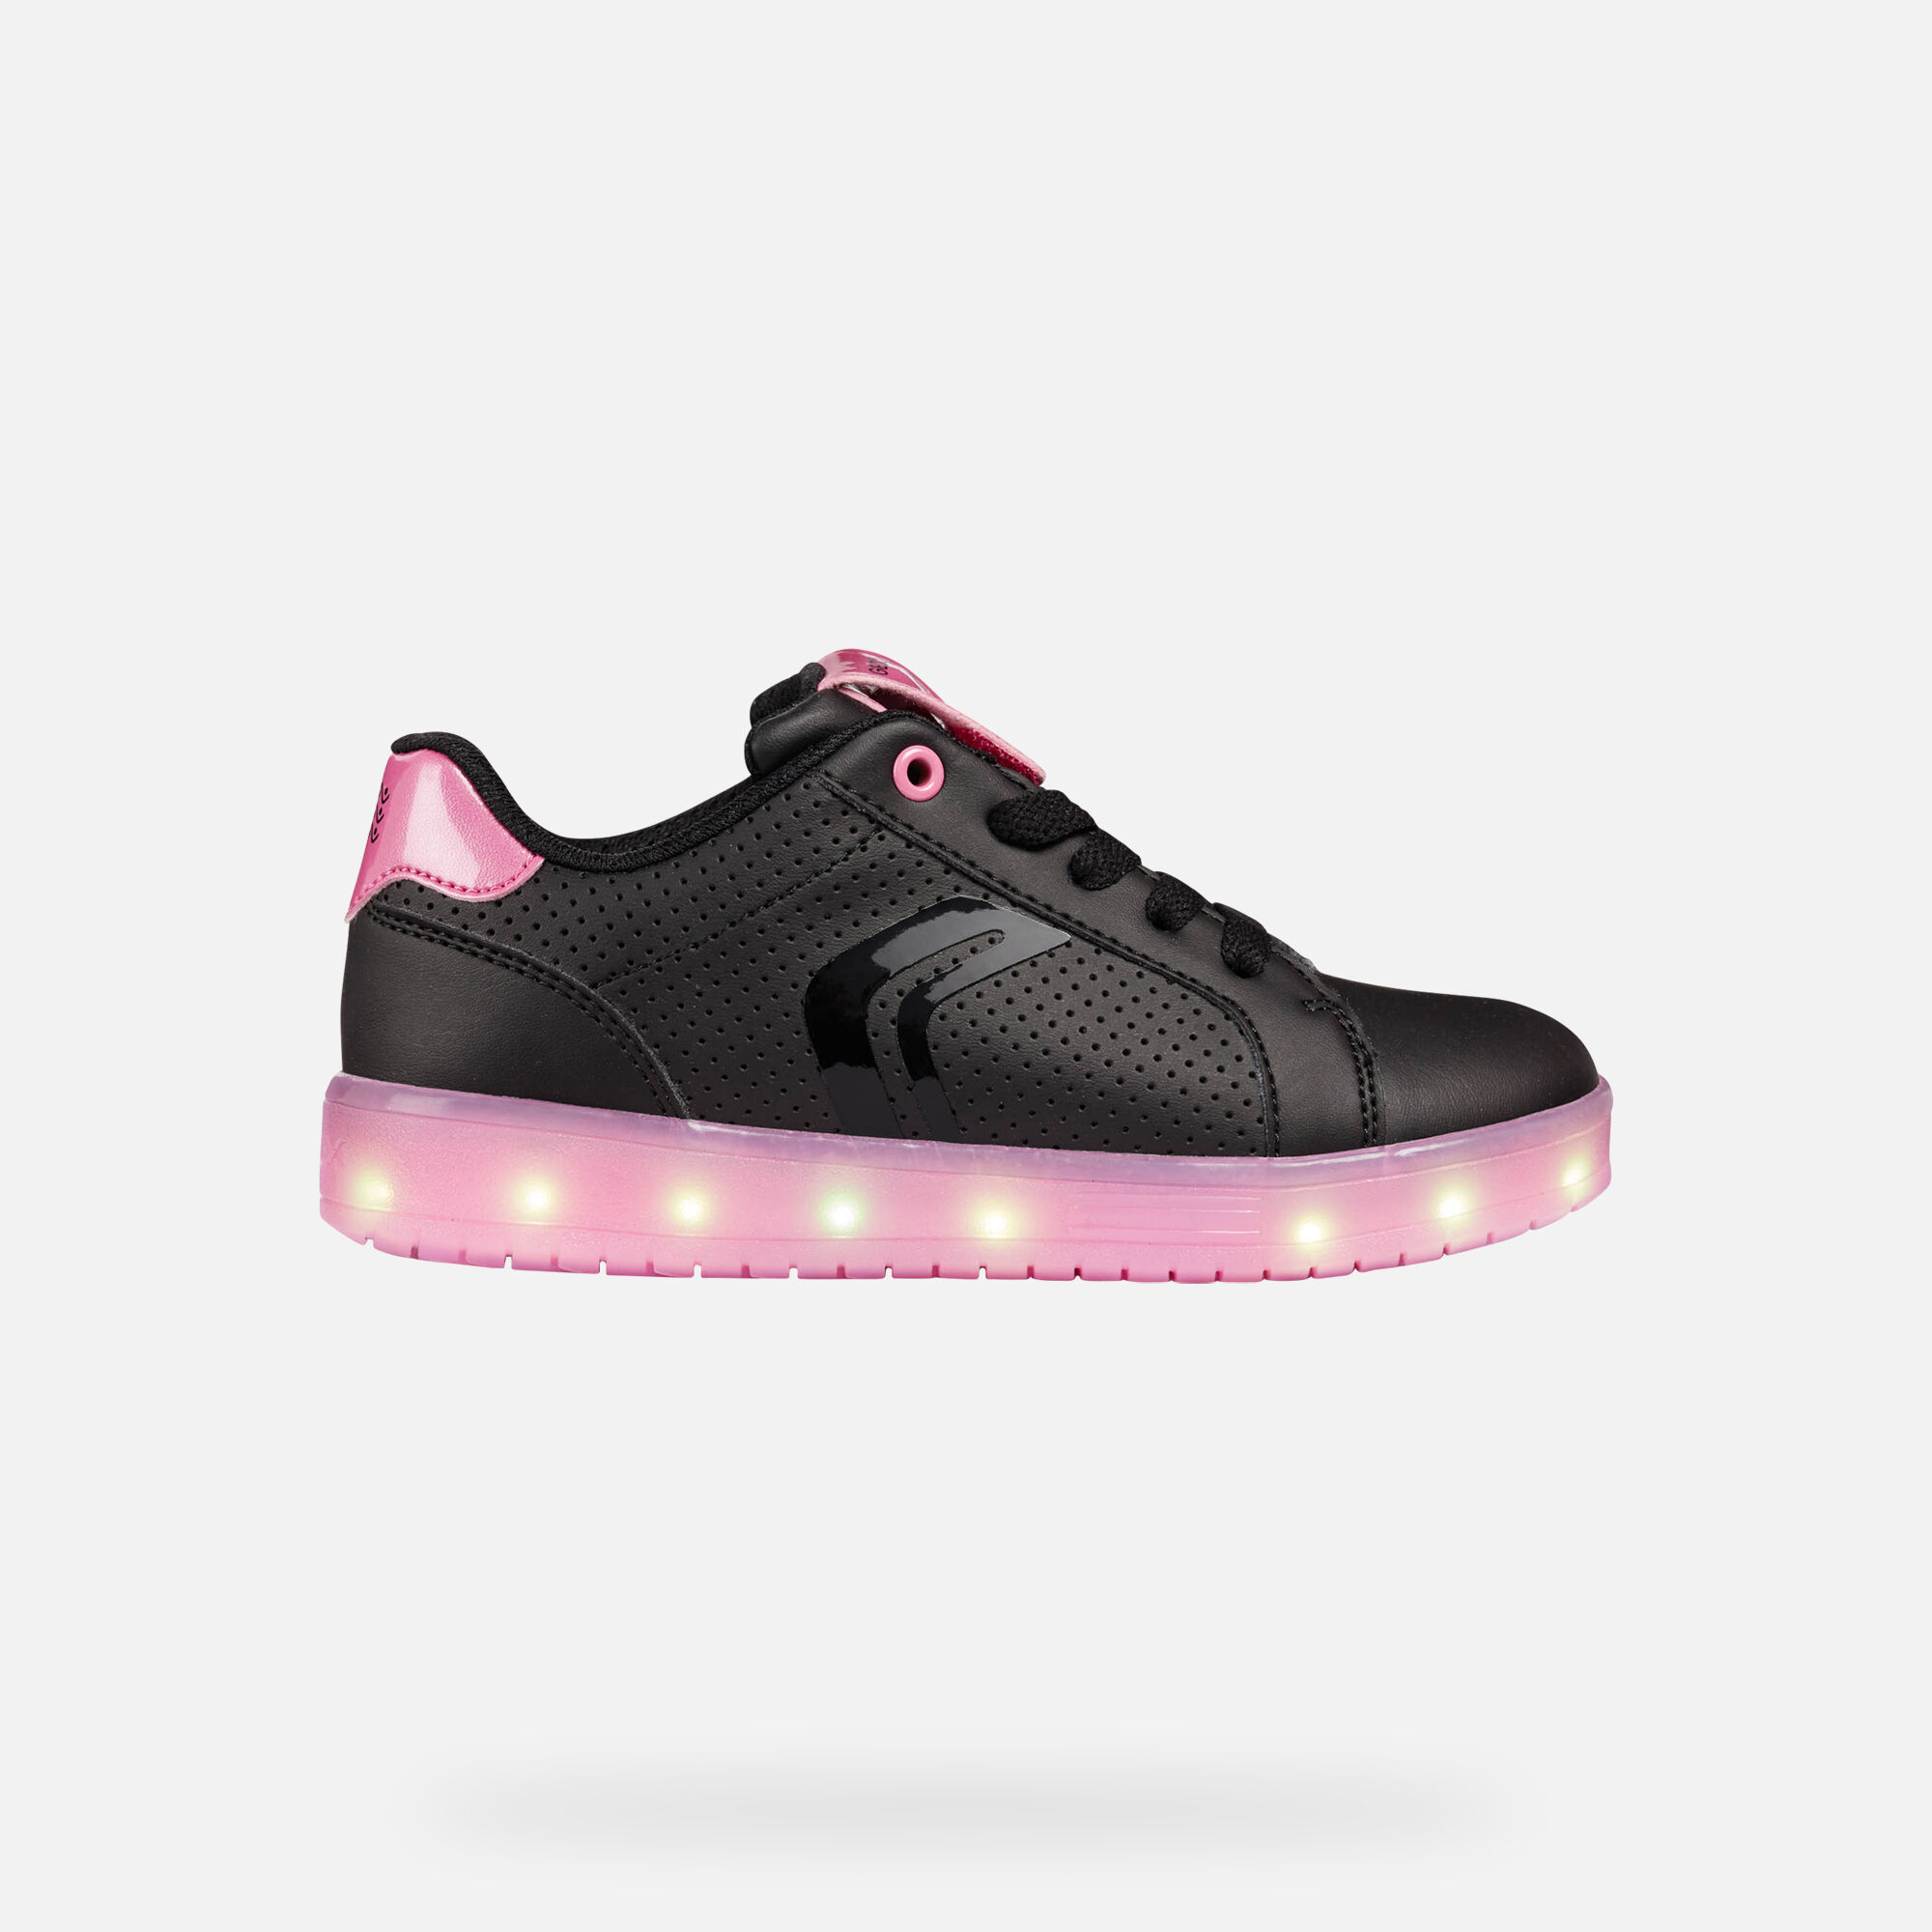 Fille Chaussures Led Fille Led DeGeox Fille DeGeox Led Kommodor Kommodor Chaussures Chaussures Kommodor EQdBeCoWxr